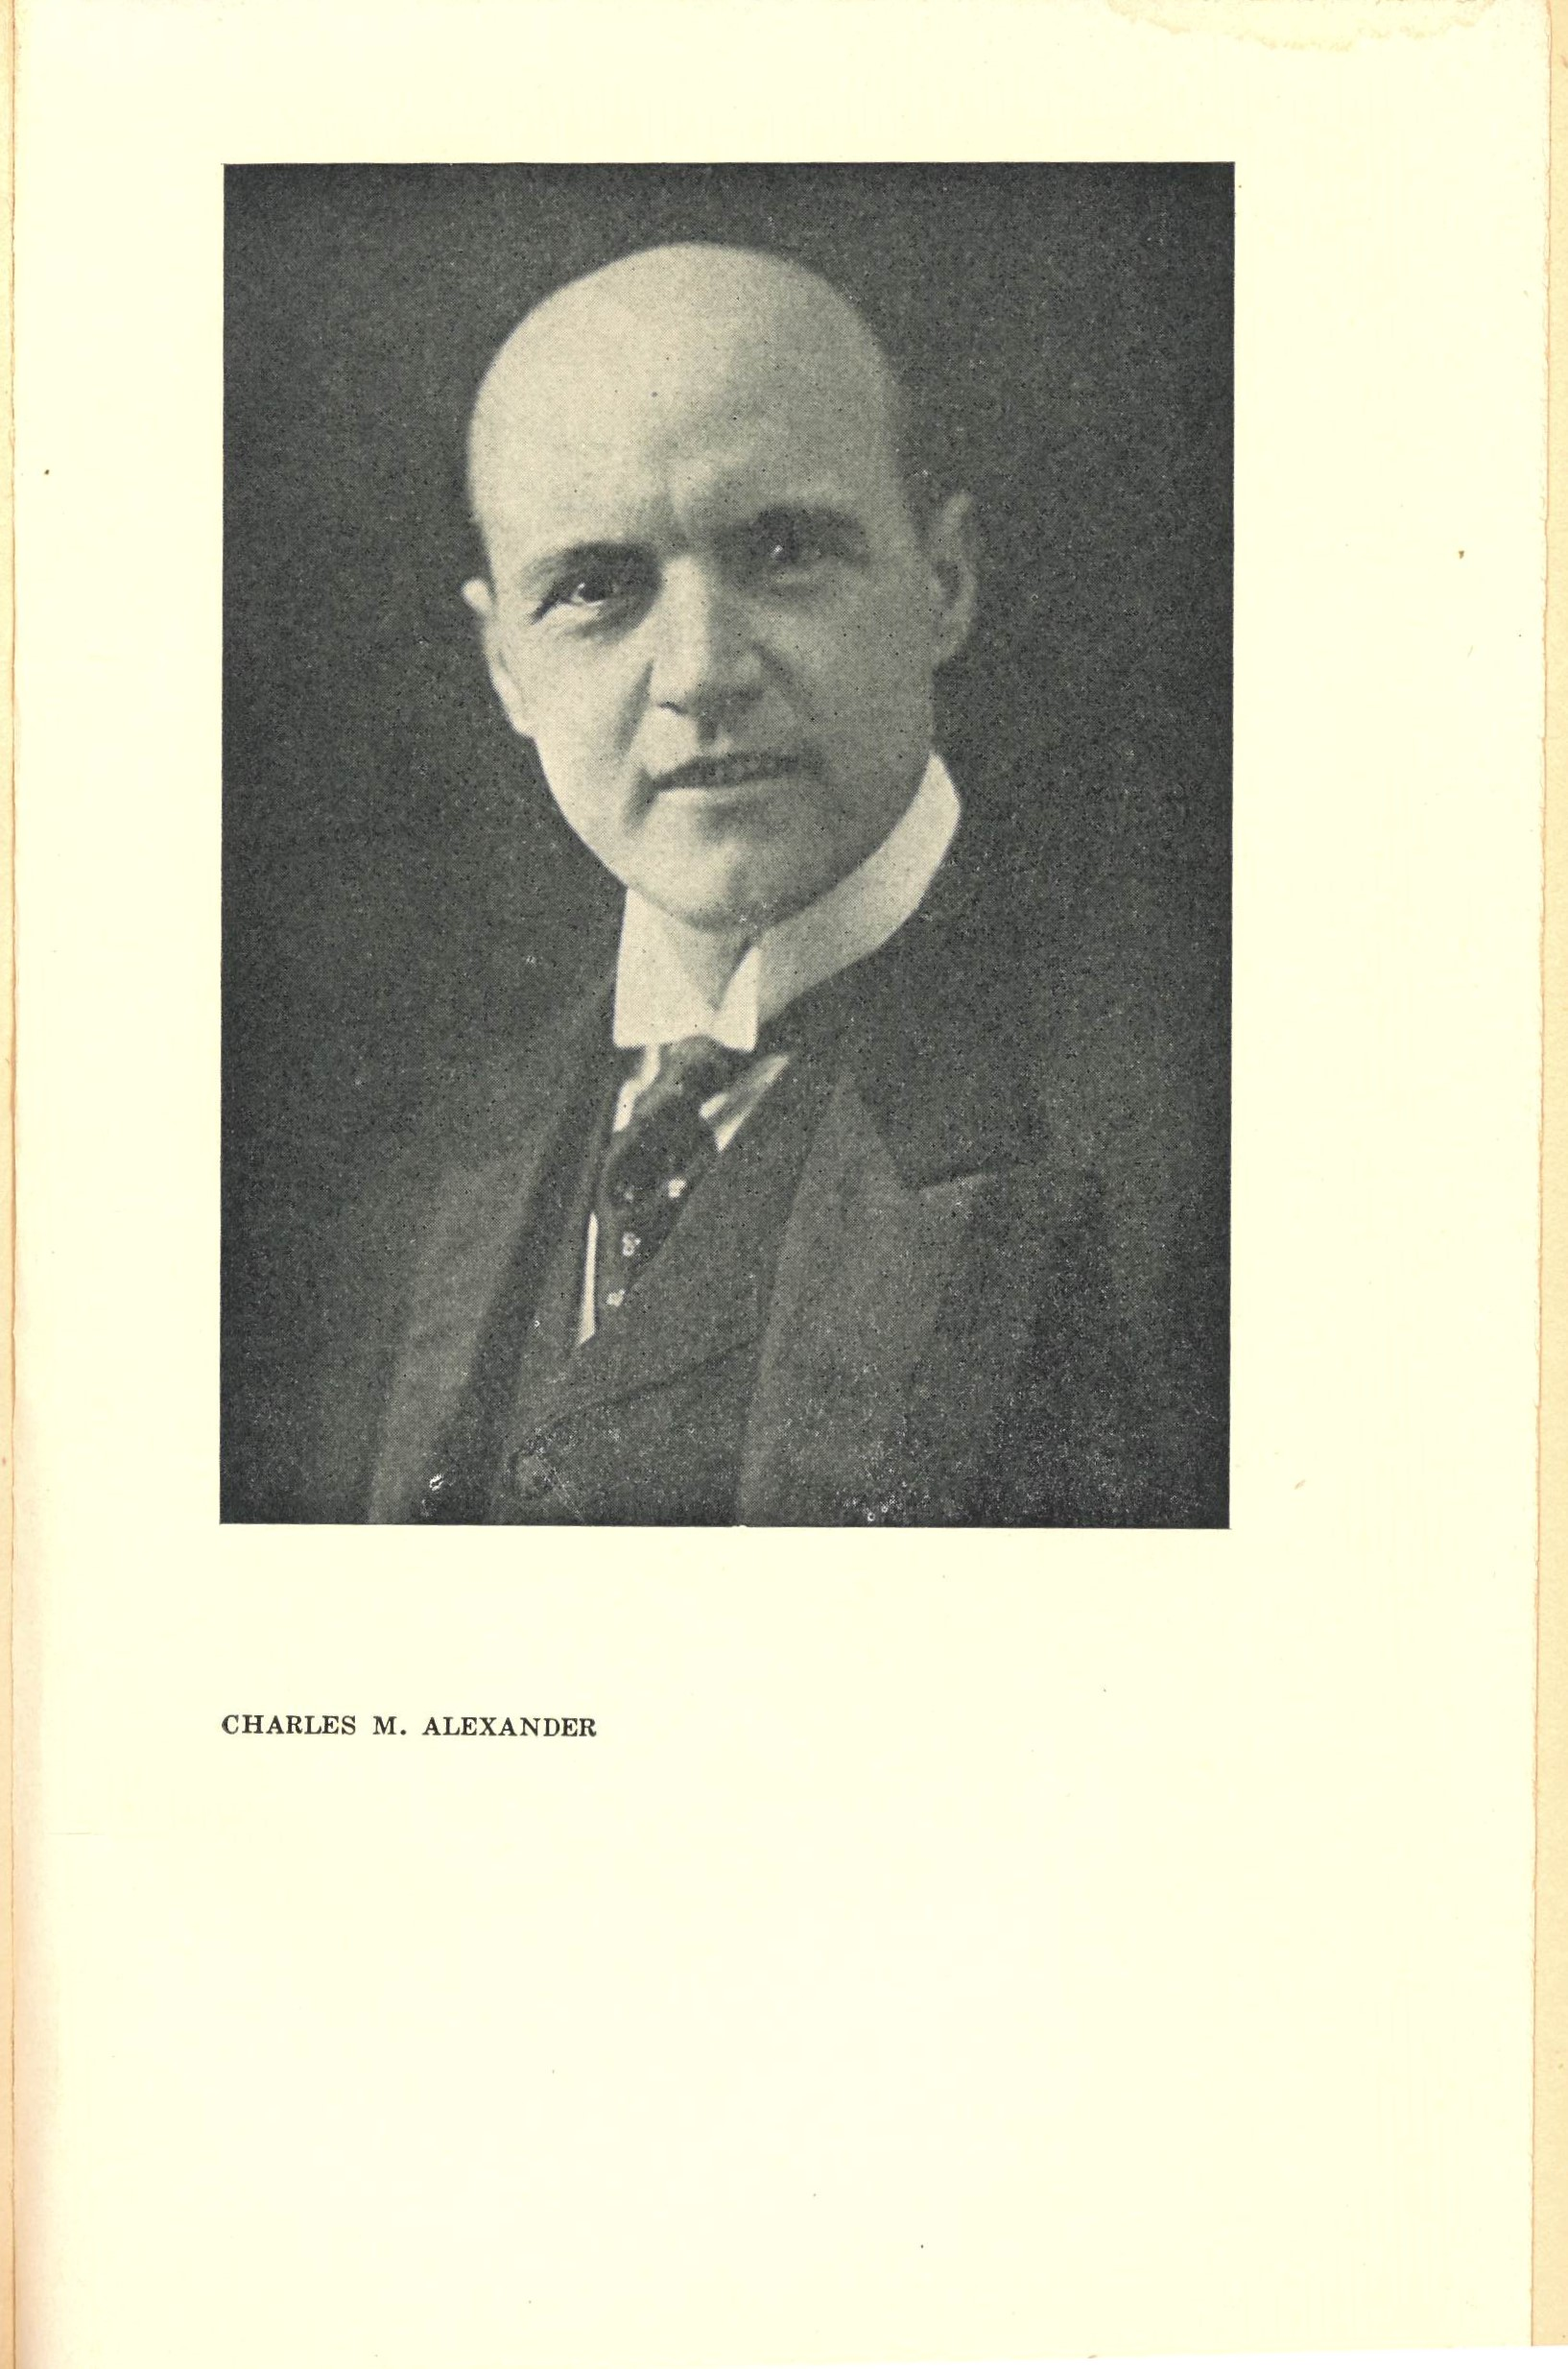 Photograph. Charles M. Alexander, from George C. Stebbins: Reminiscences and Gospel Hymn Stories. George H. Doran Company: New York, 1924.